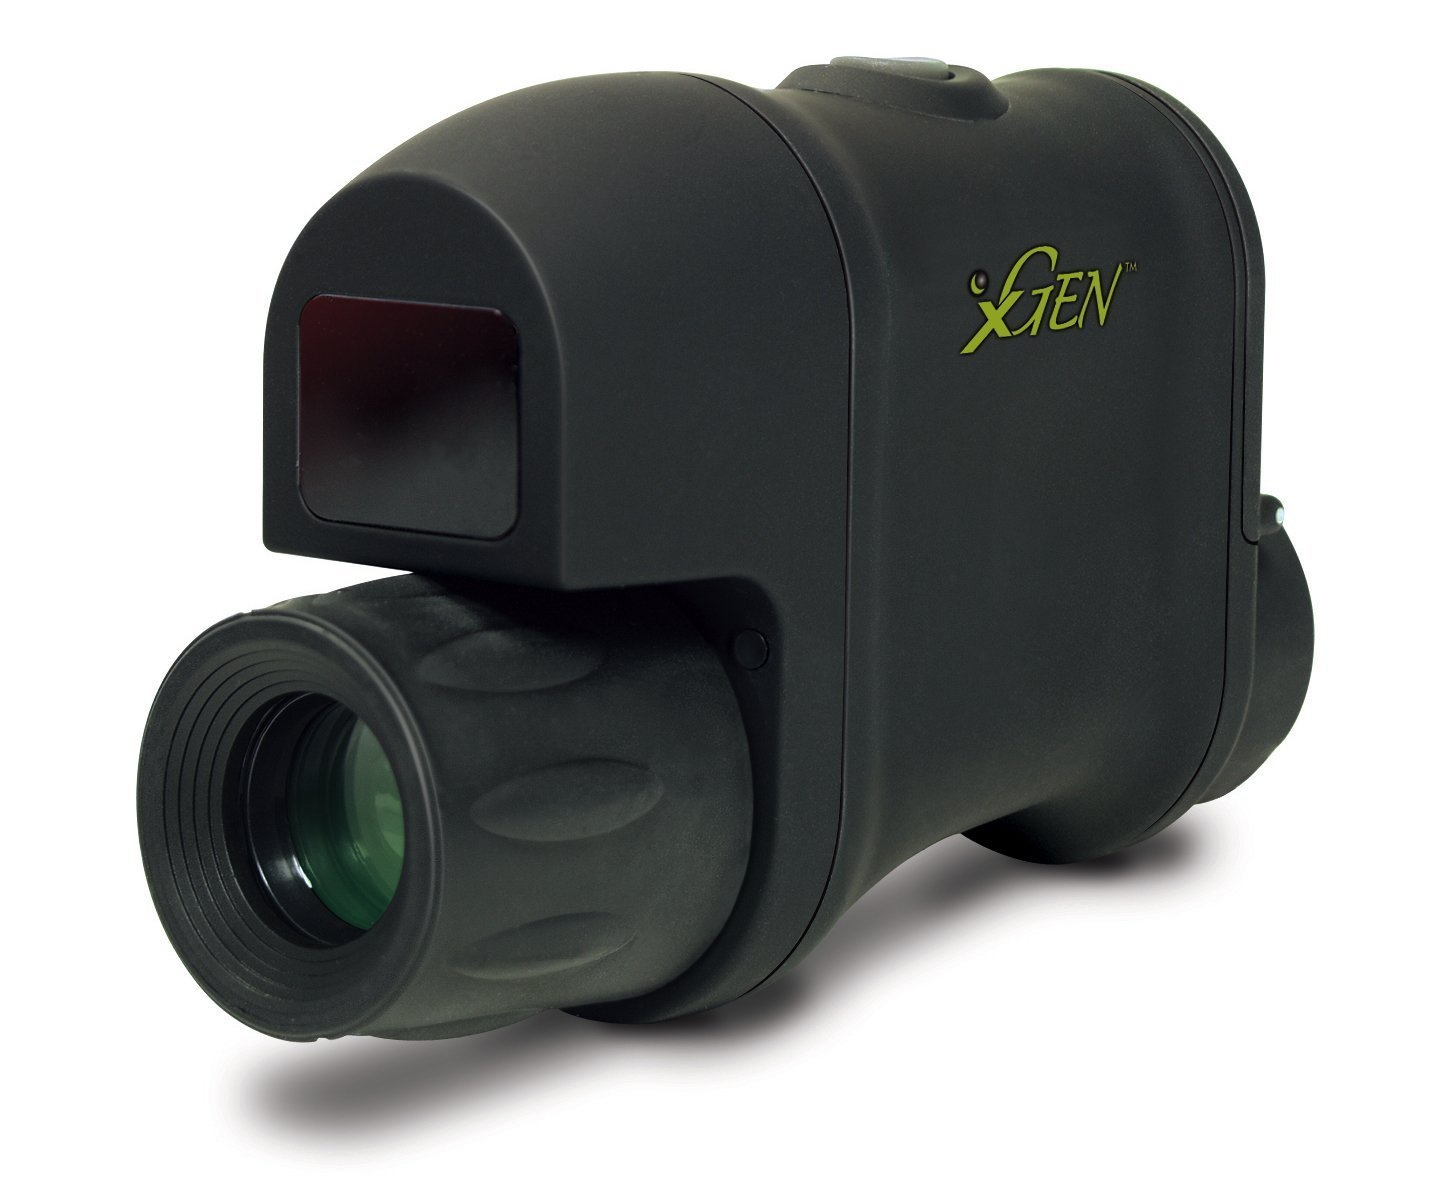 Xgen 2.1x Digital Night Vision Viewer